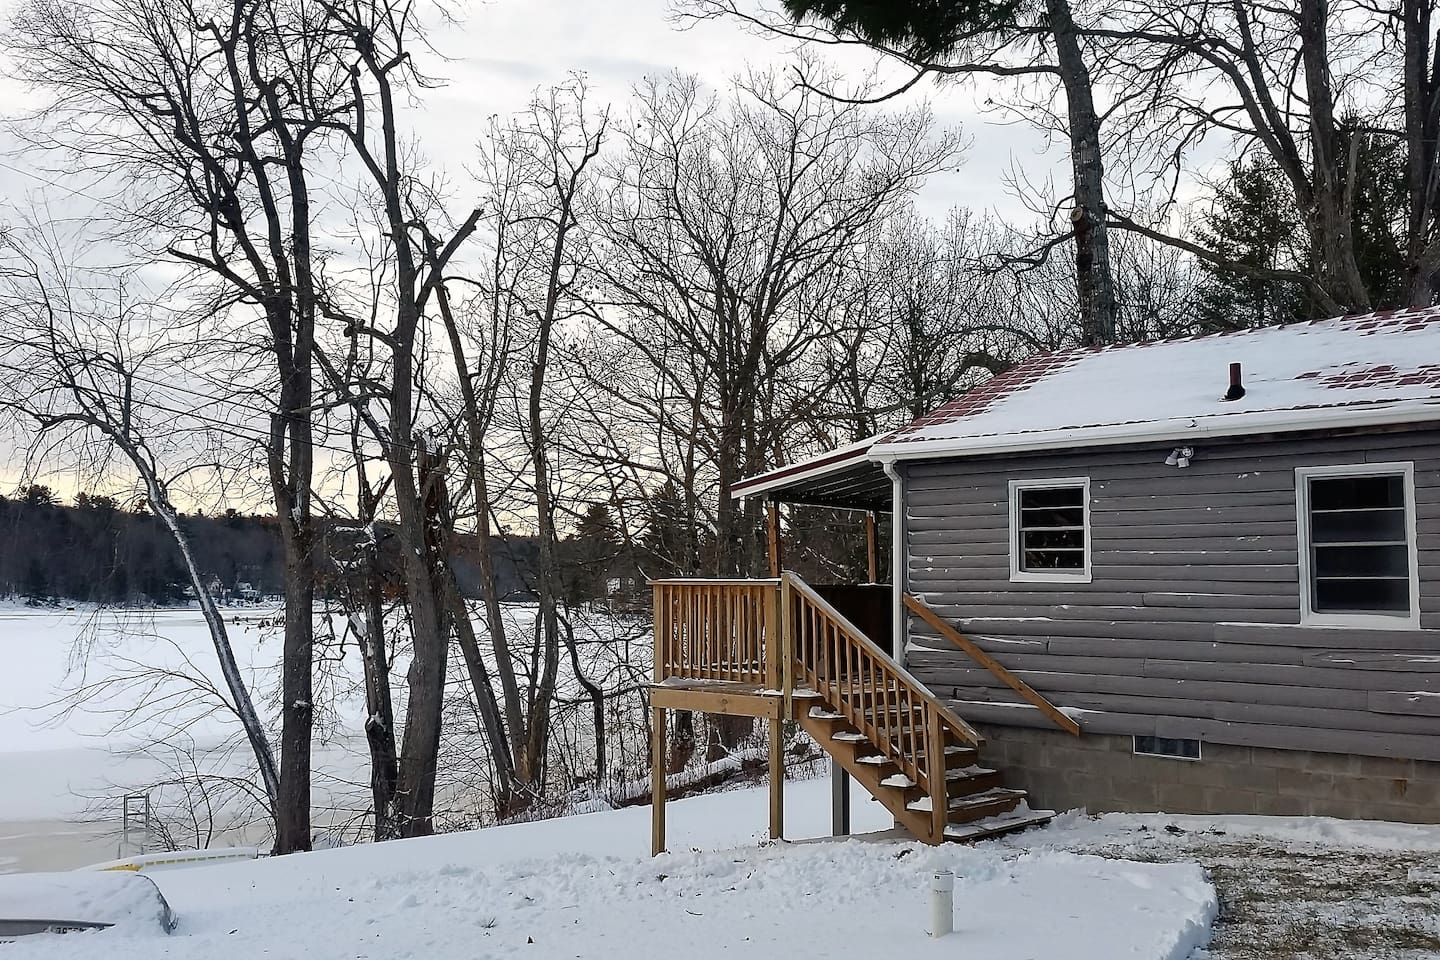 Popular with ice fishermen and snowmobilers, Pleasant Pond offers great winter activities.